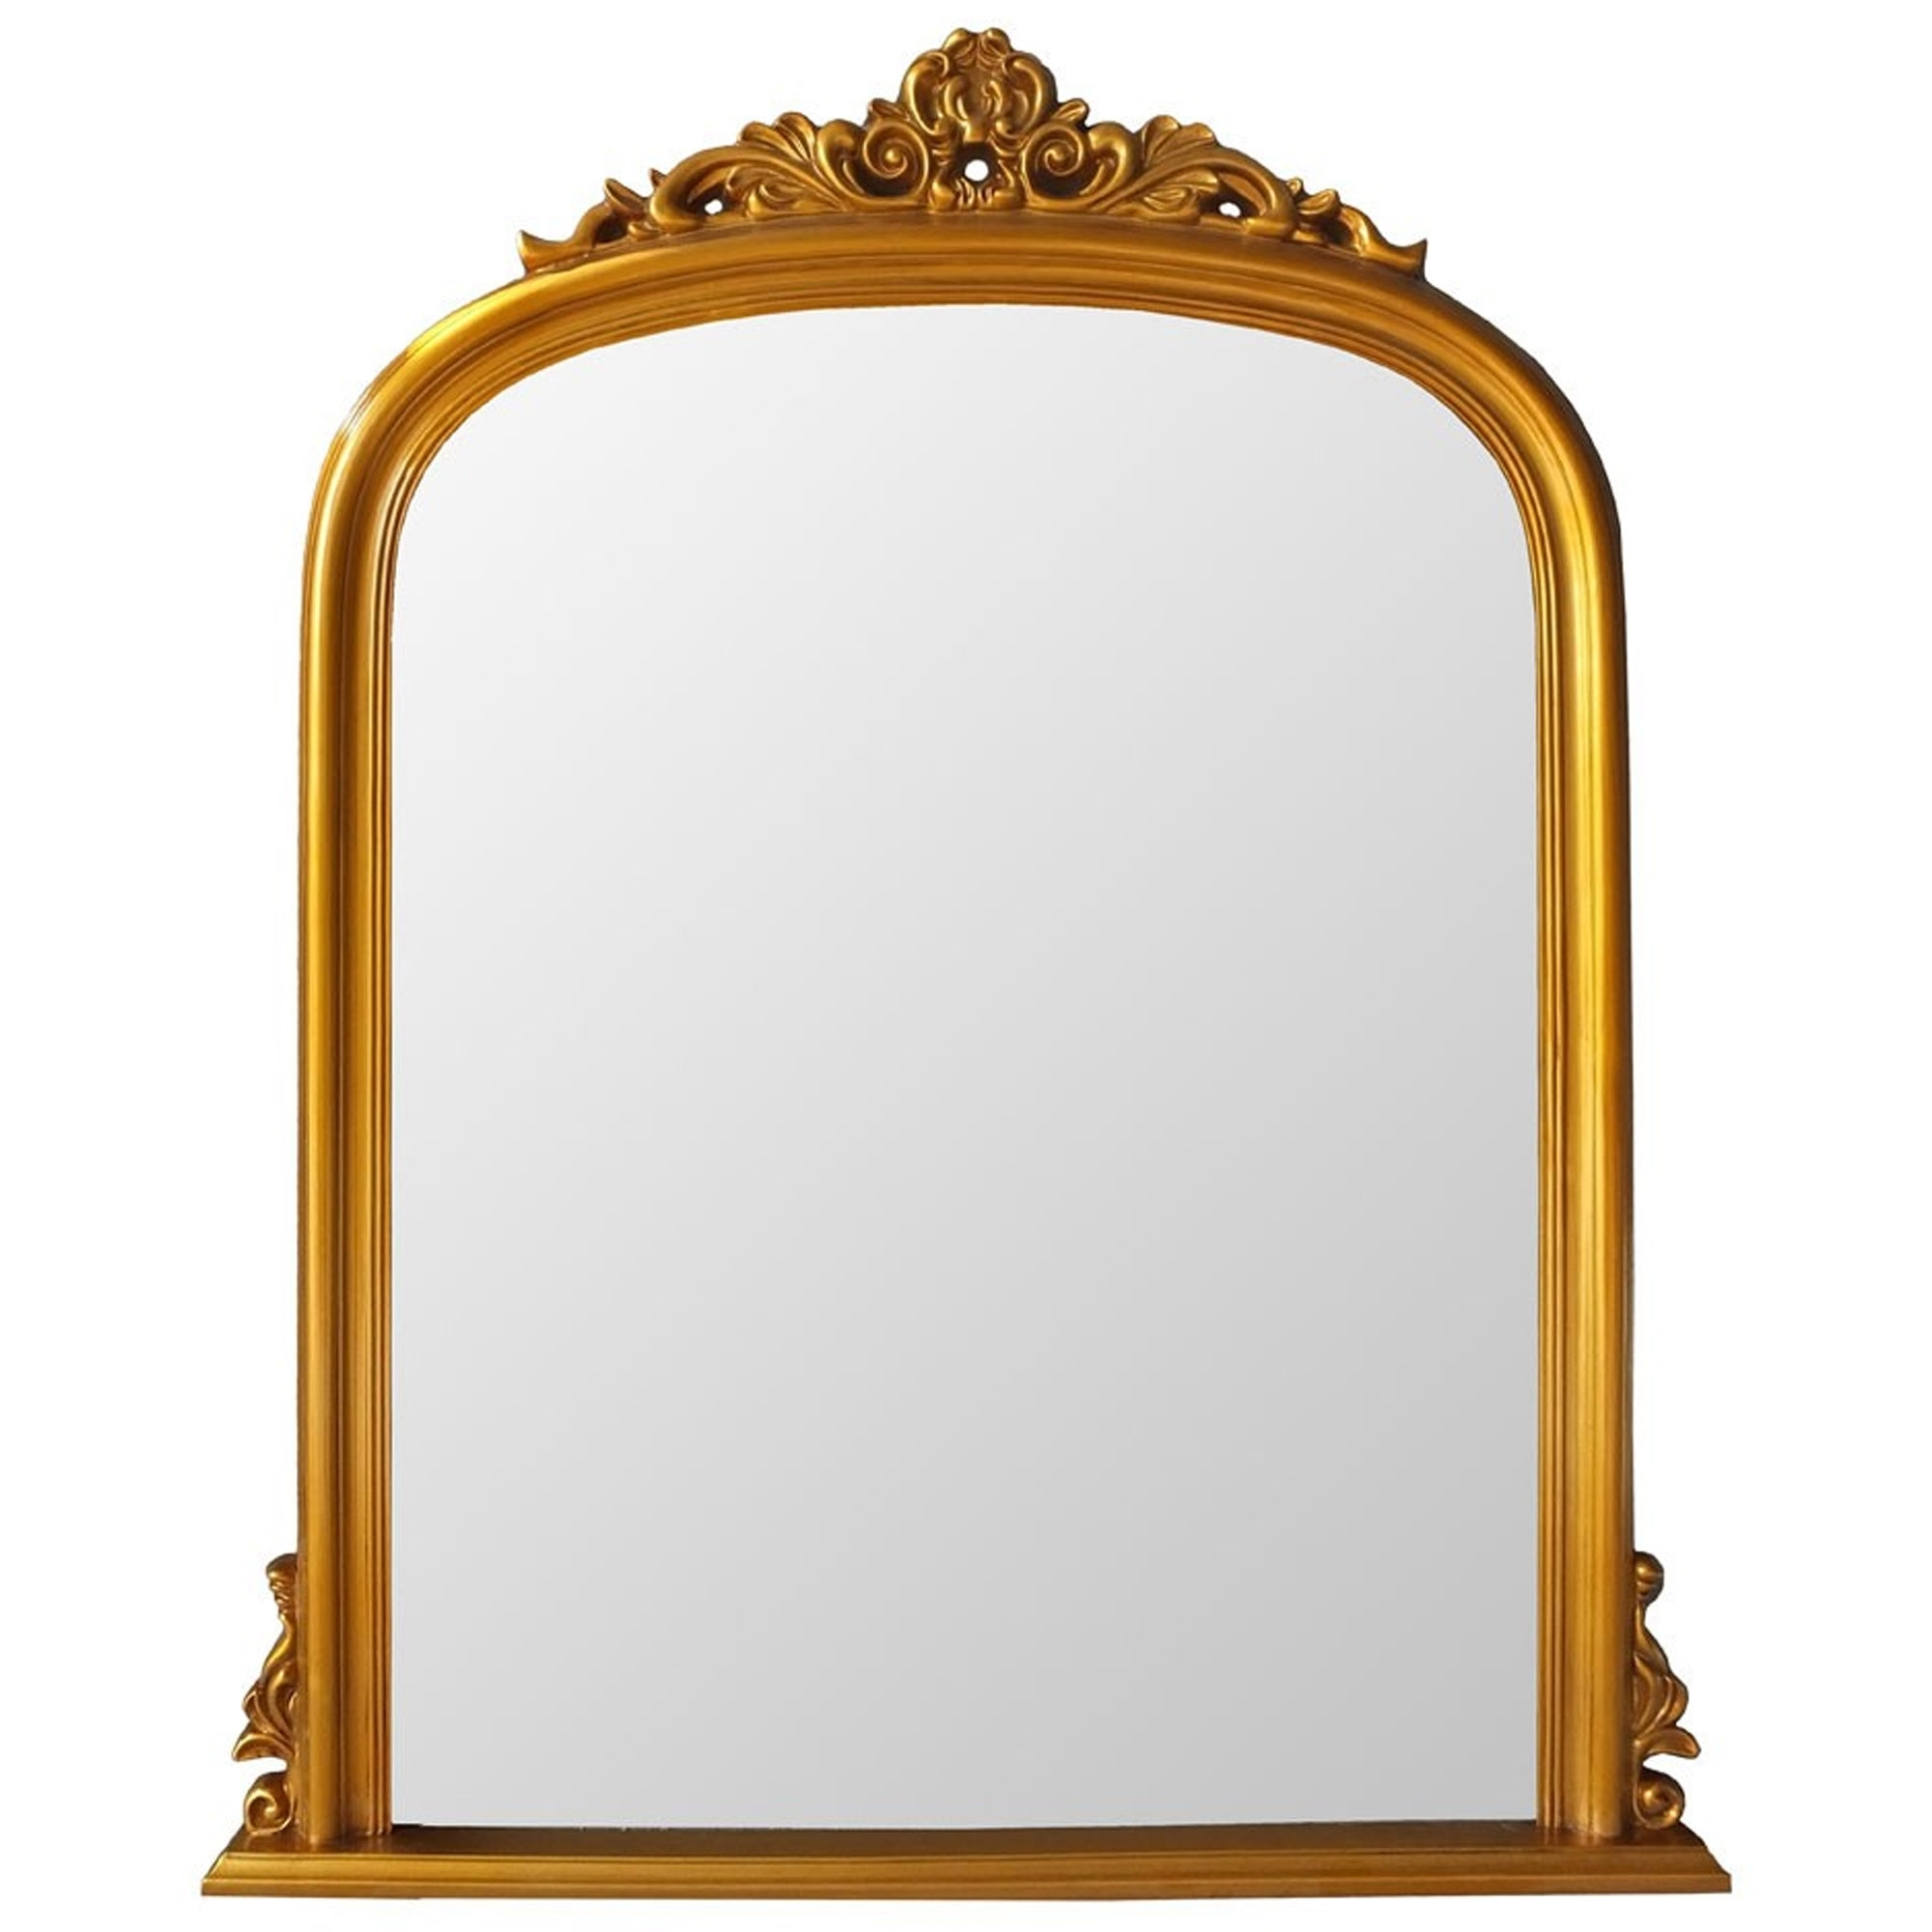 Antique French Style Gold Henrietta Wall Mirror Pertaining To Gold Arch Wall Mirrors (View 6 of 20)